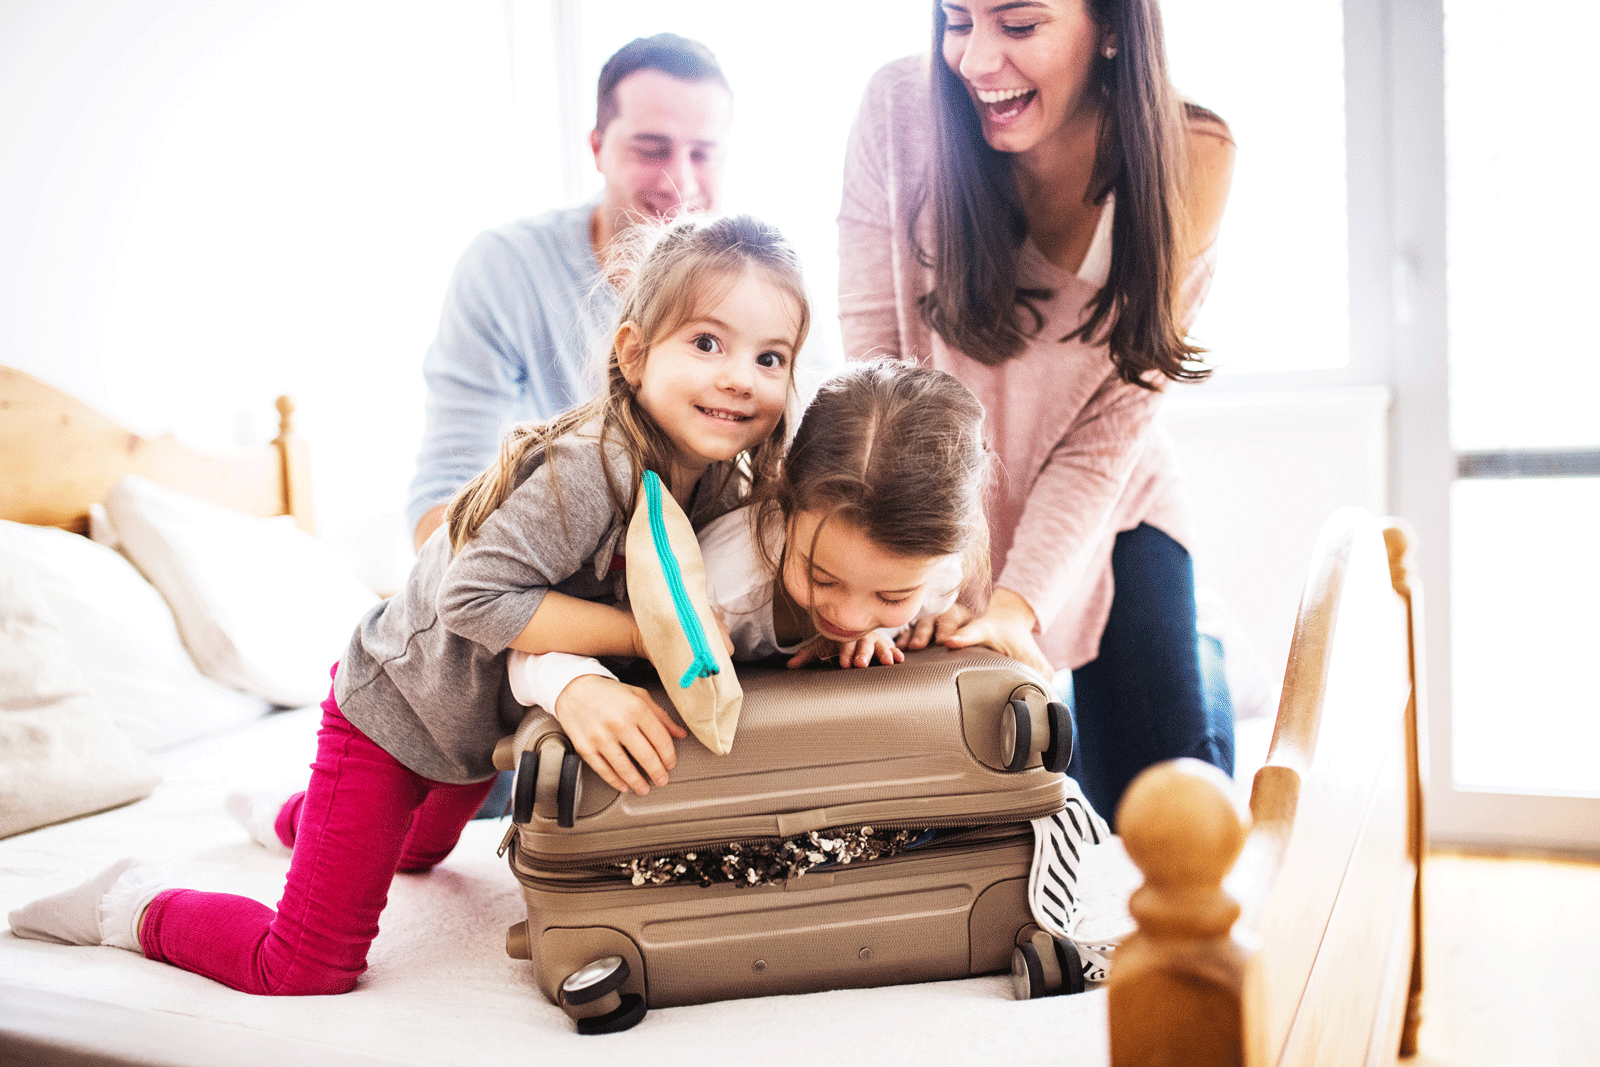 Family with young kids packing a suitcase